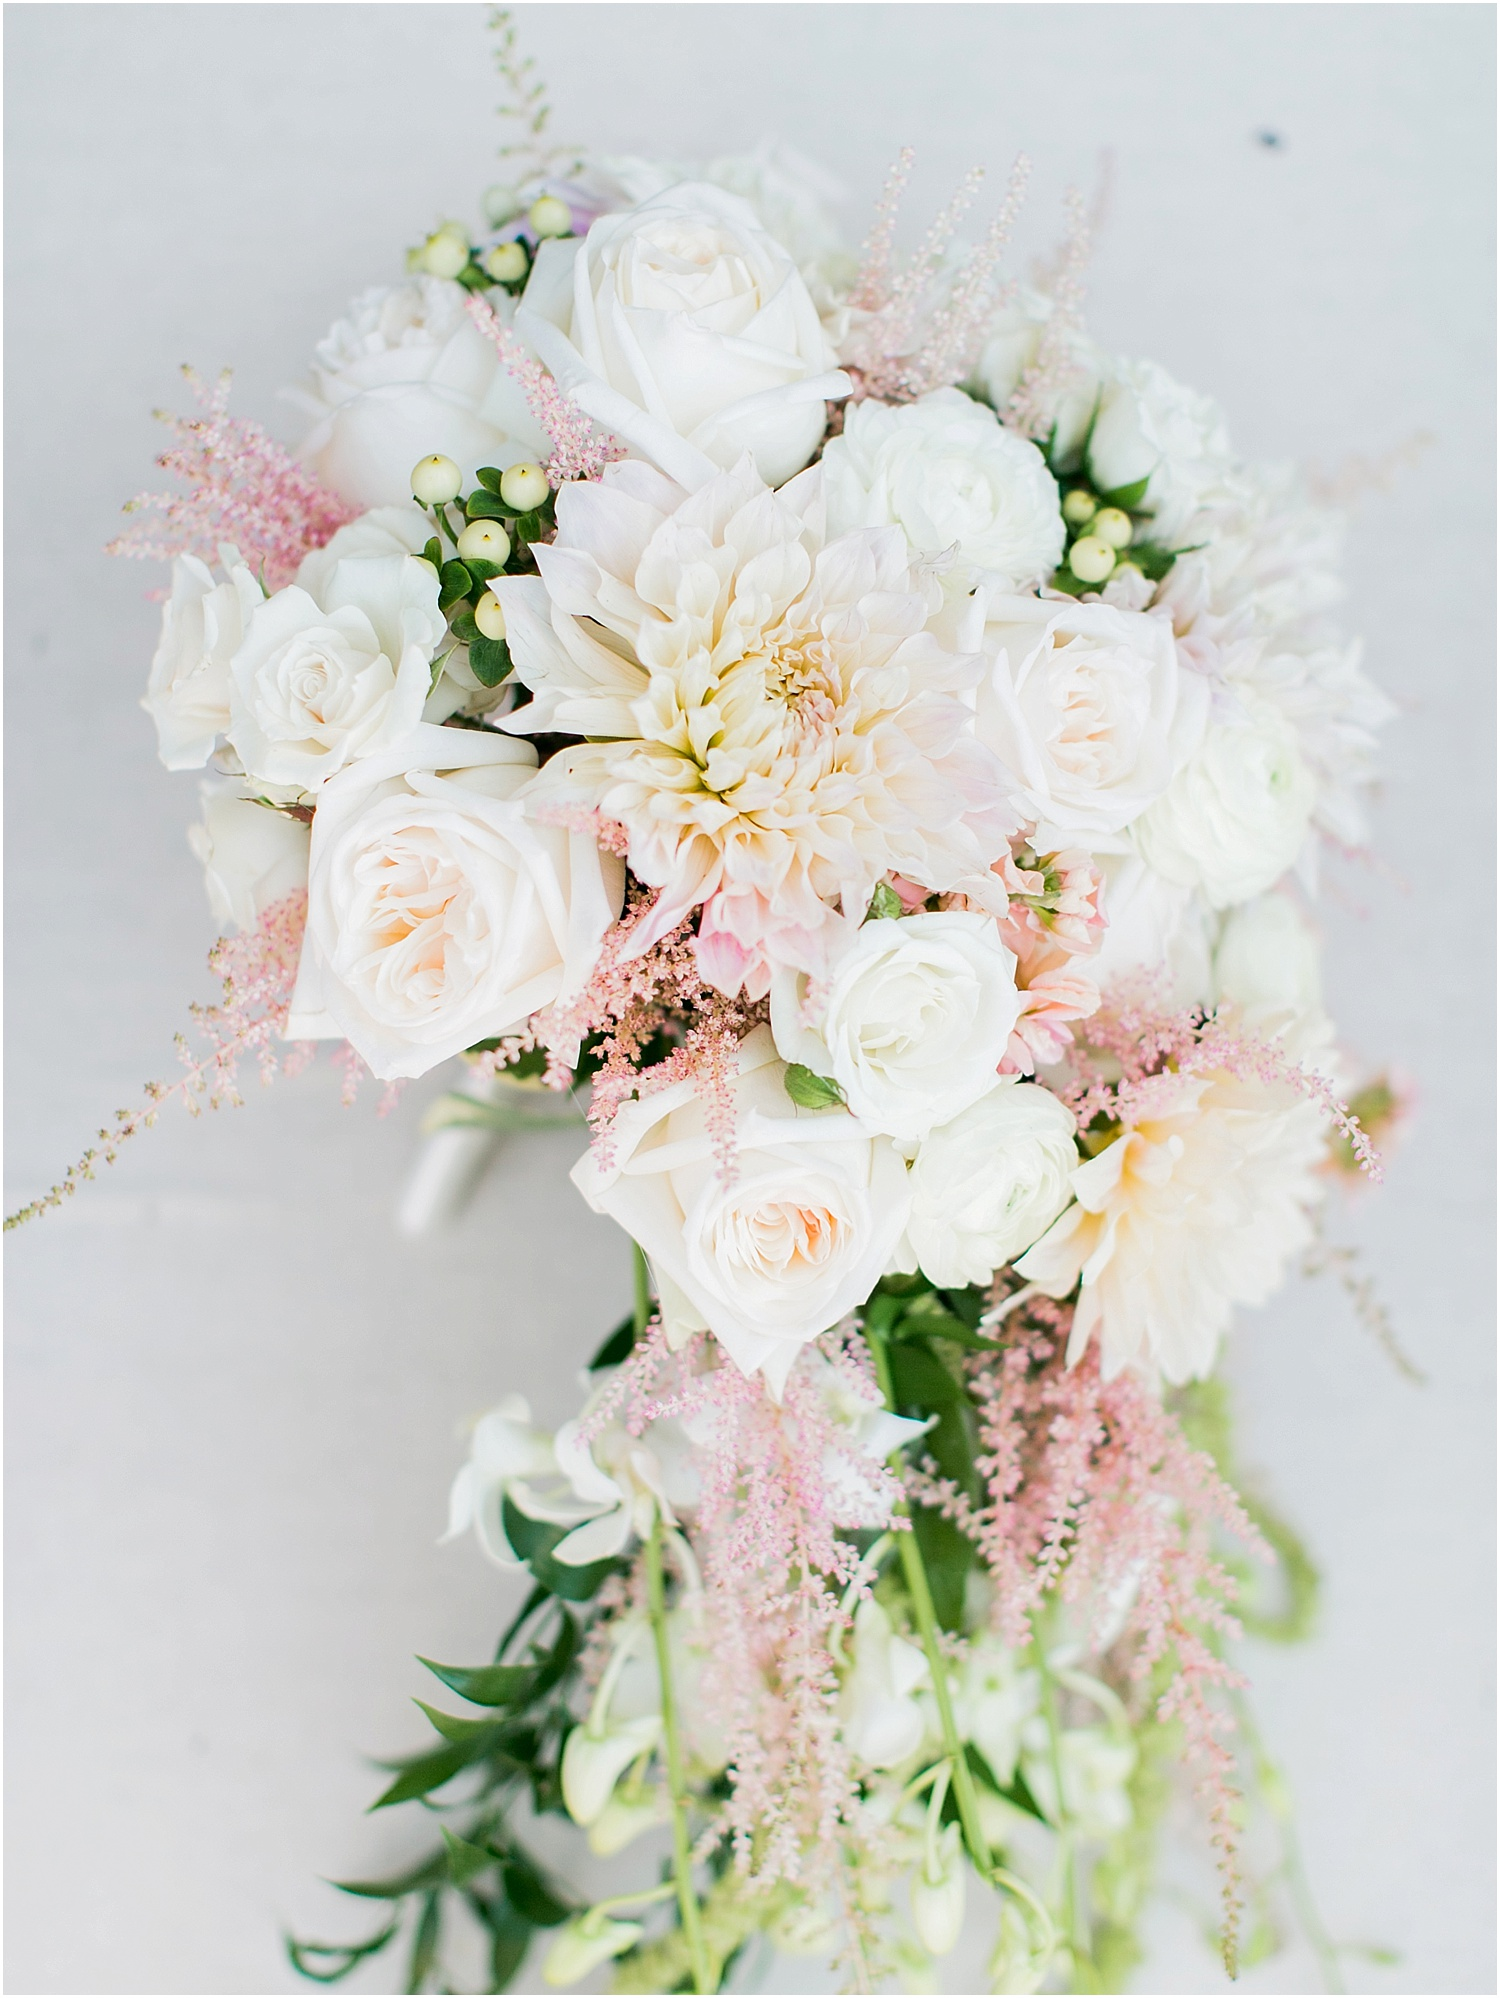 Floral Design by Always in Bloom in St Louis, MO | St Louis Club in Clayton, Missouri | Wedding Photography by Jordan Brittley